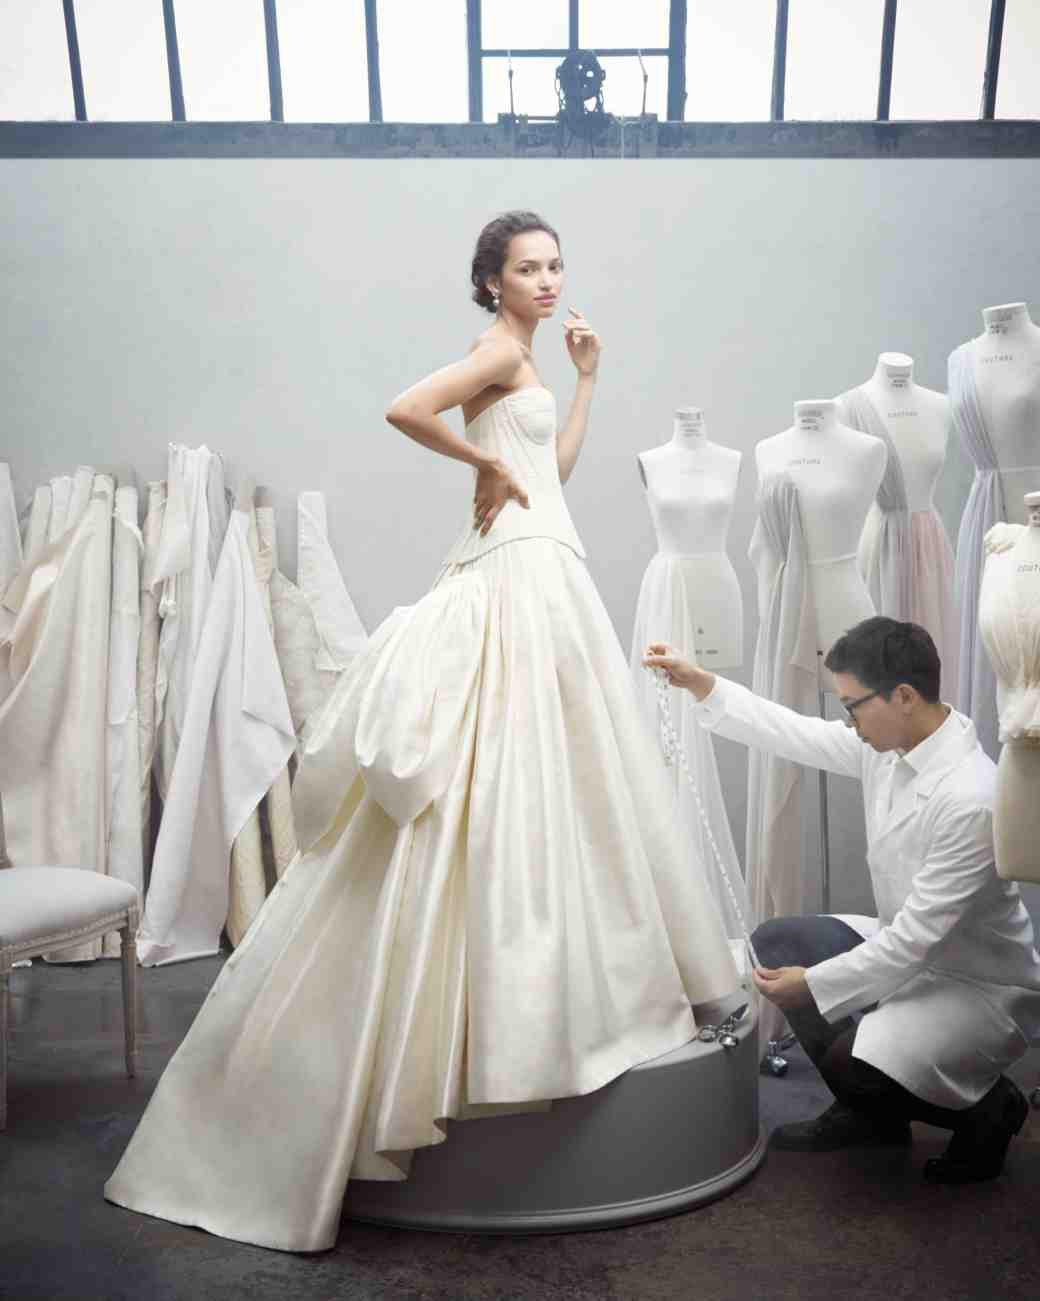 When do you buy your wedding dress